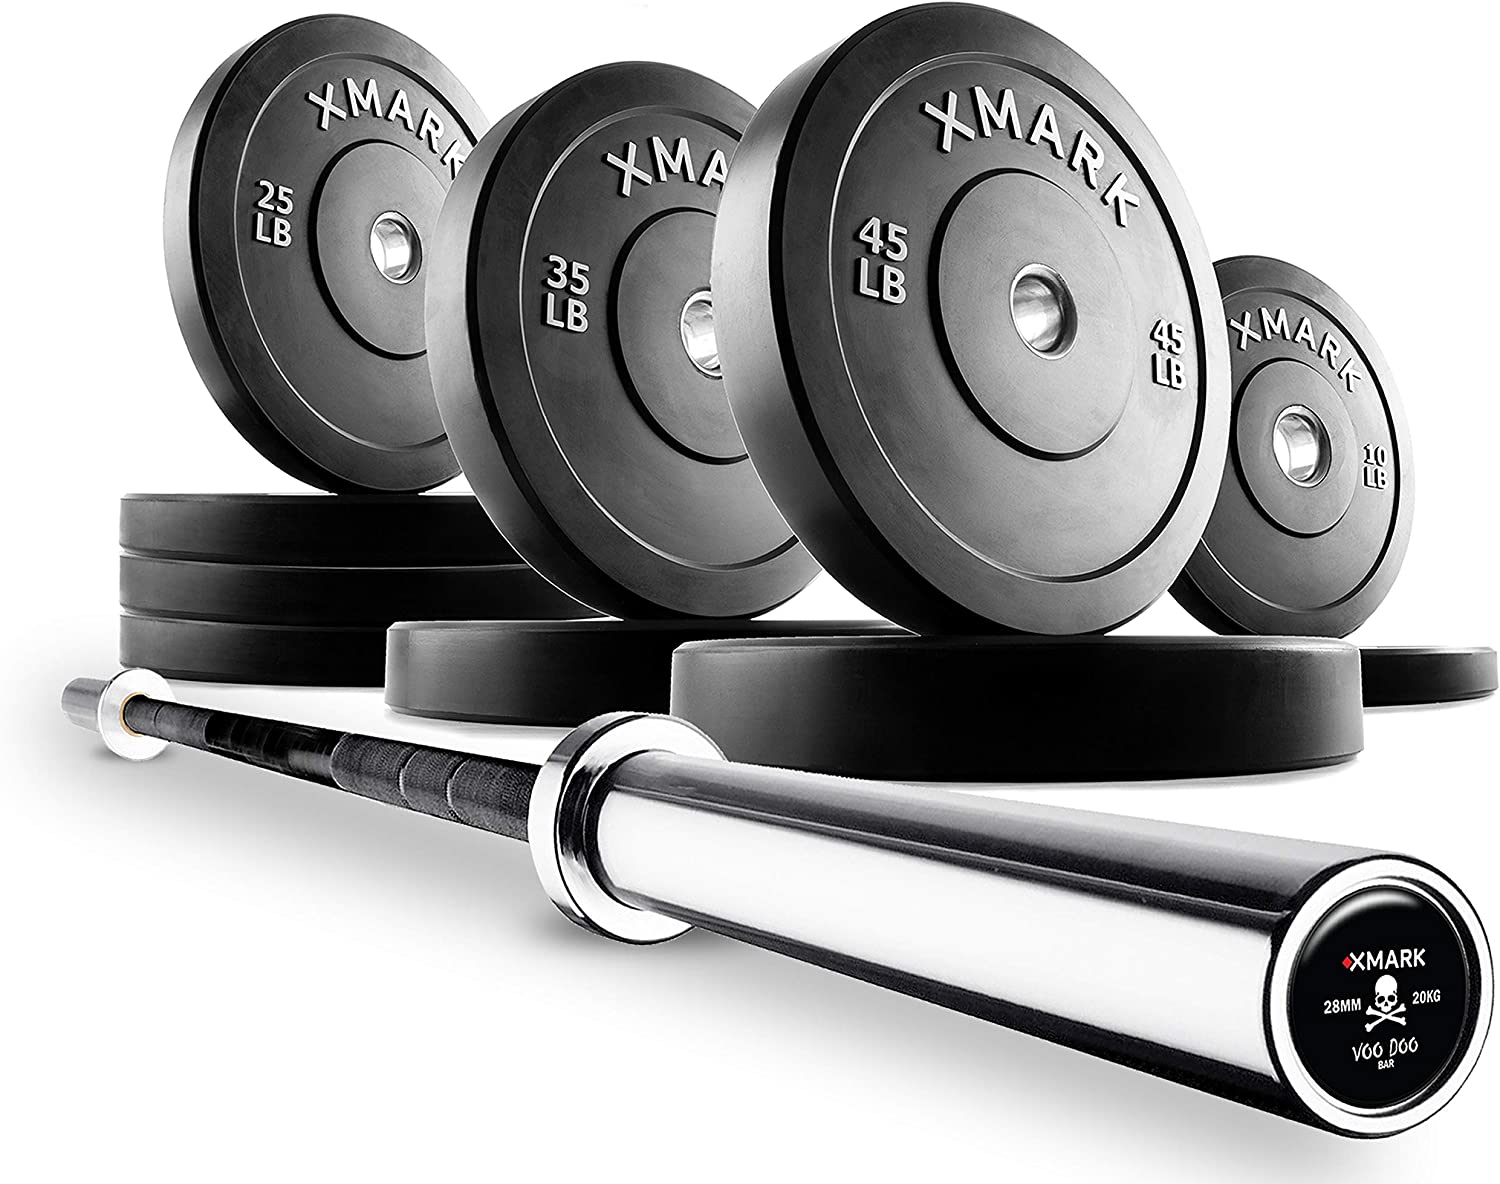 XMark Deadlift Voodoo Commercial Olympic Bar and Slim Profile, Low Bounce Premium Olympic Bumper Sets, XM-3385